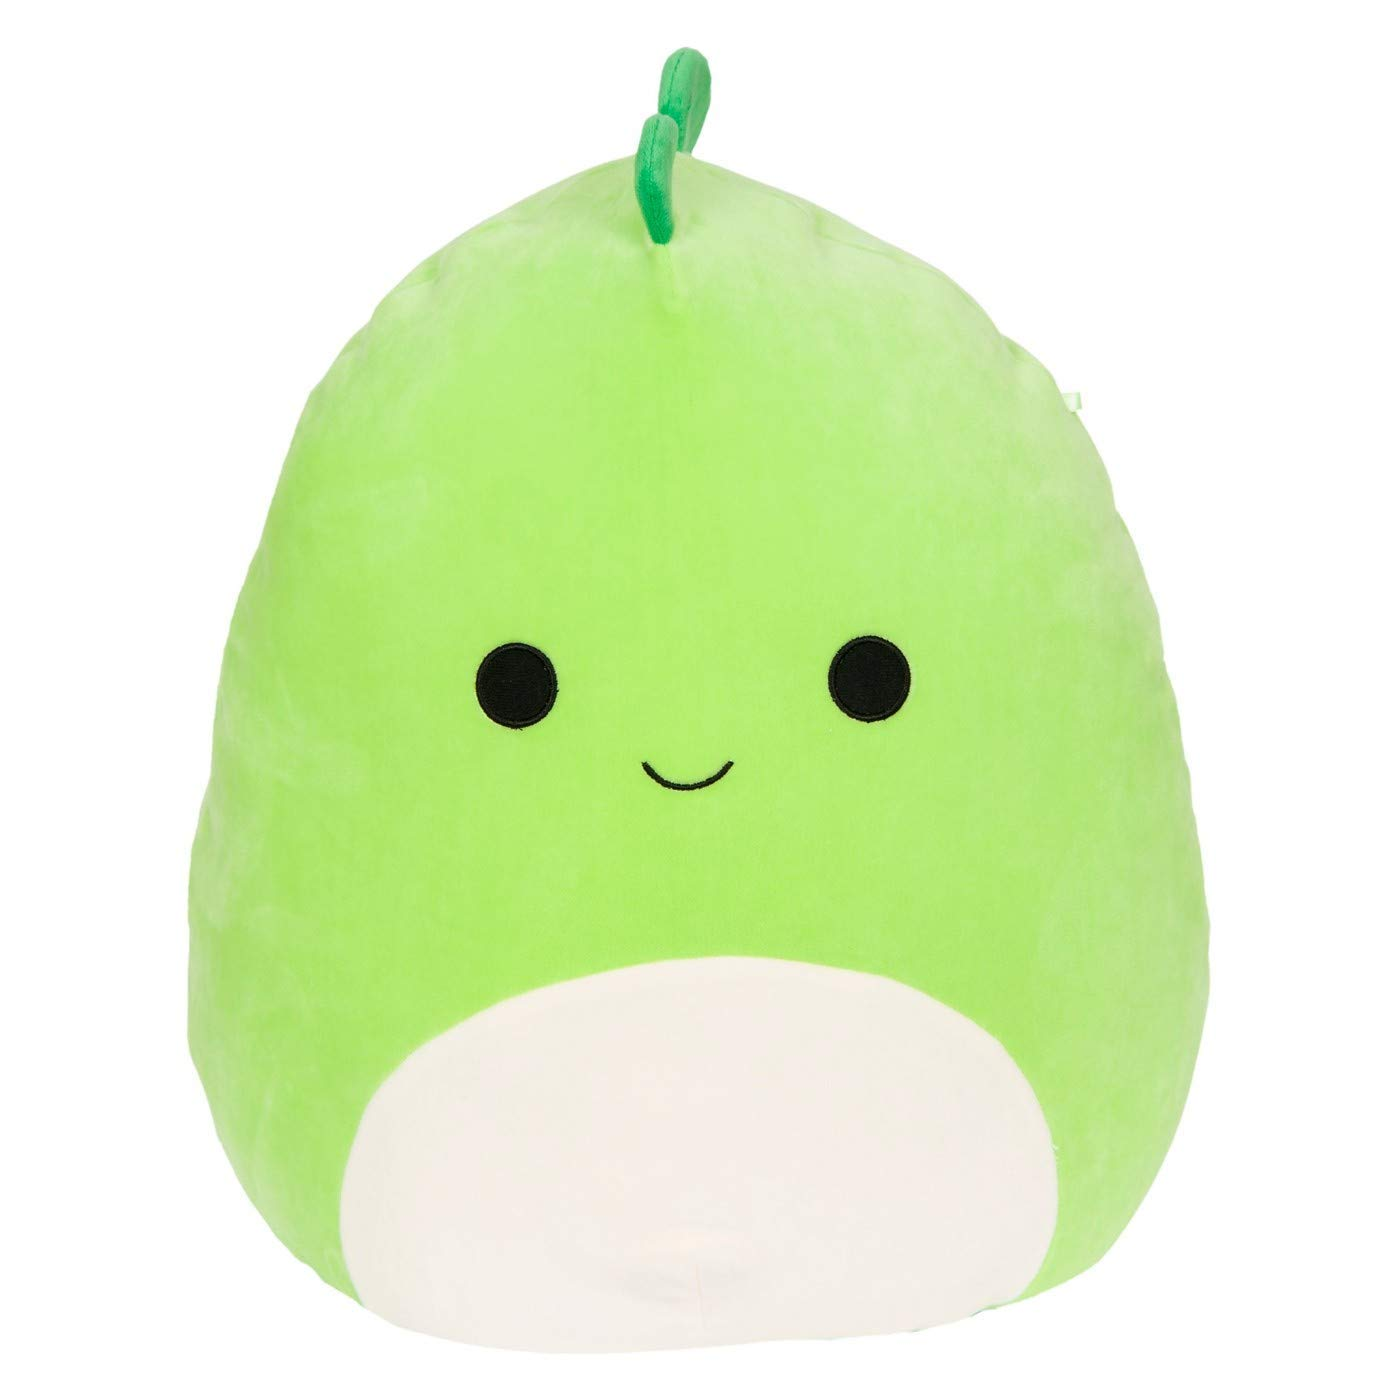 Squishmallow Original Kellytoy 16'' Dino The Green Dinosaur Stuffed Animal Pillow Pet Gift Christmas Holiday